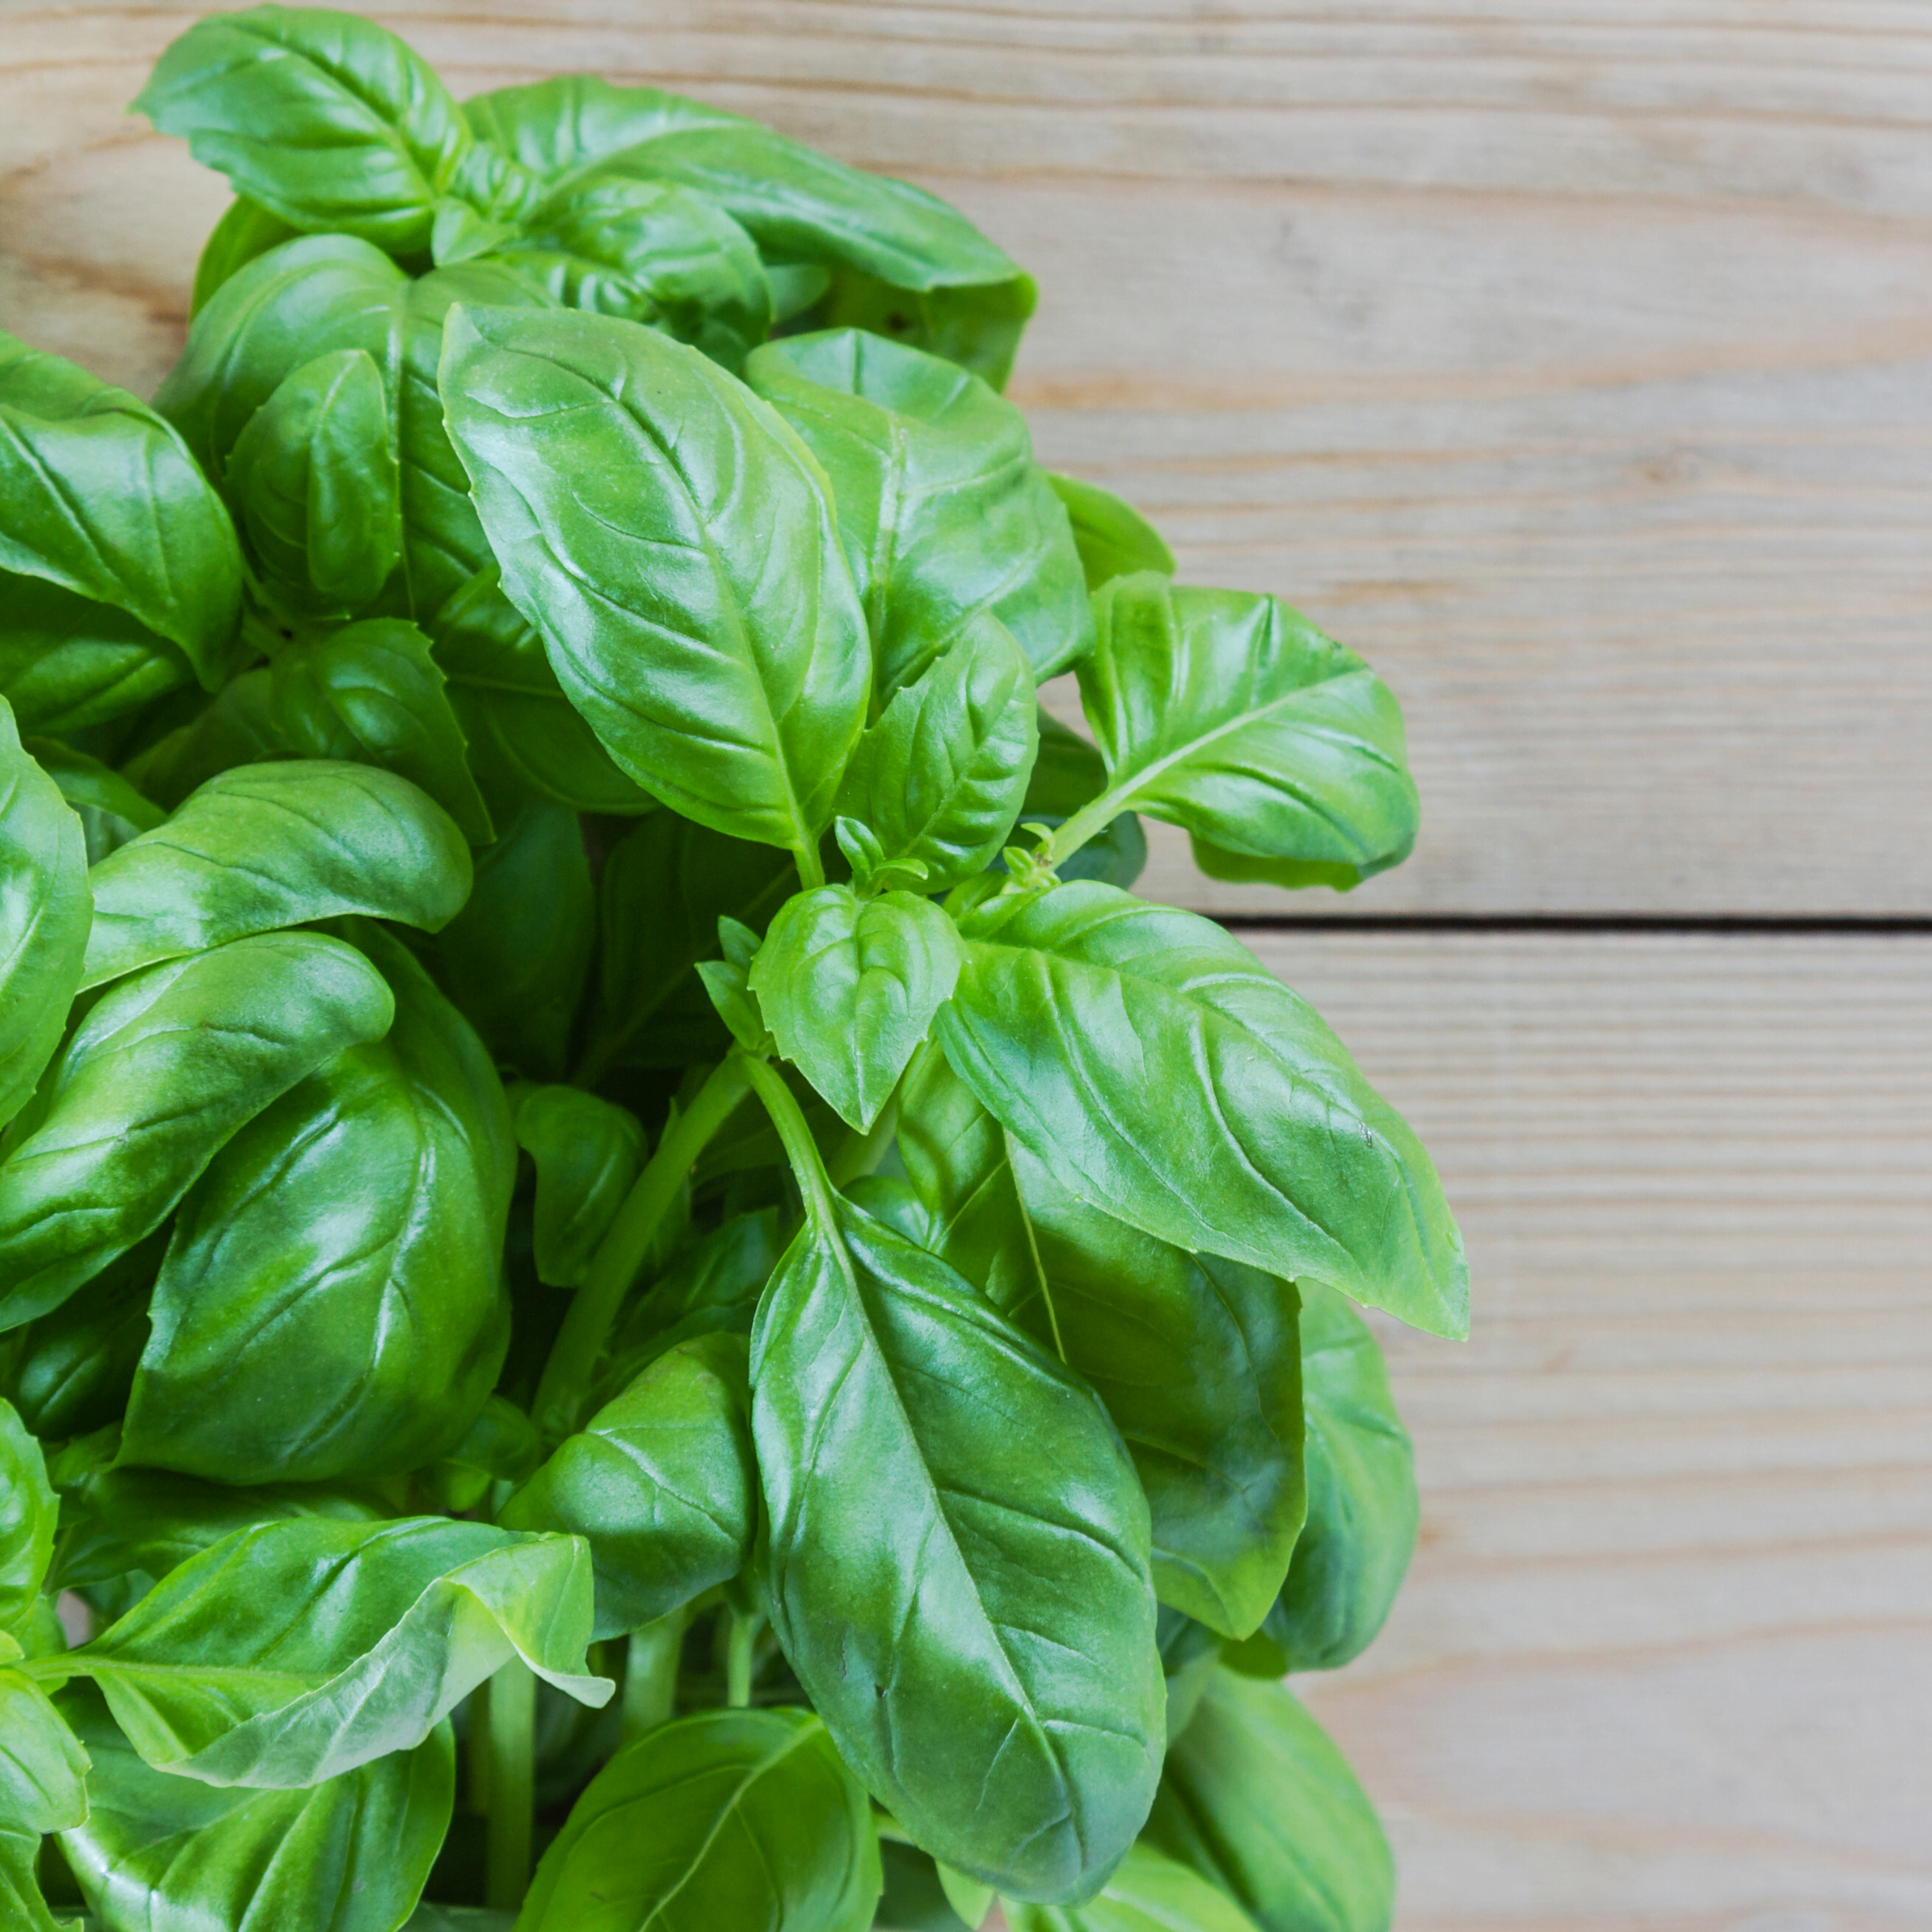 How to Prune Basil for the Best Flavor